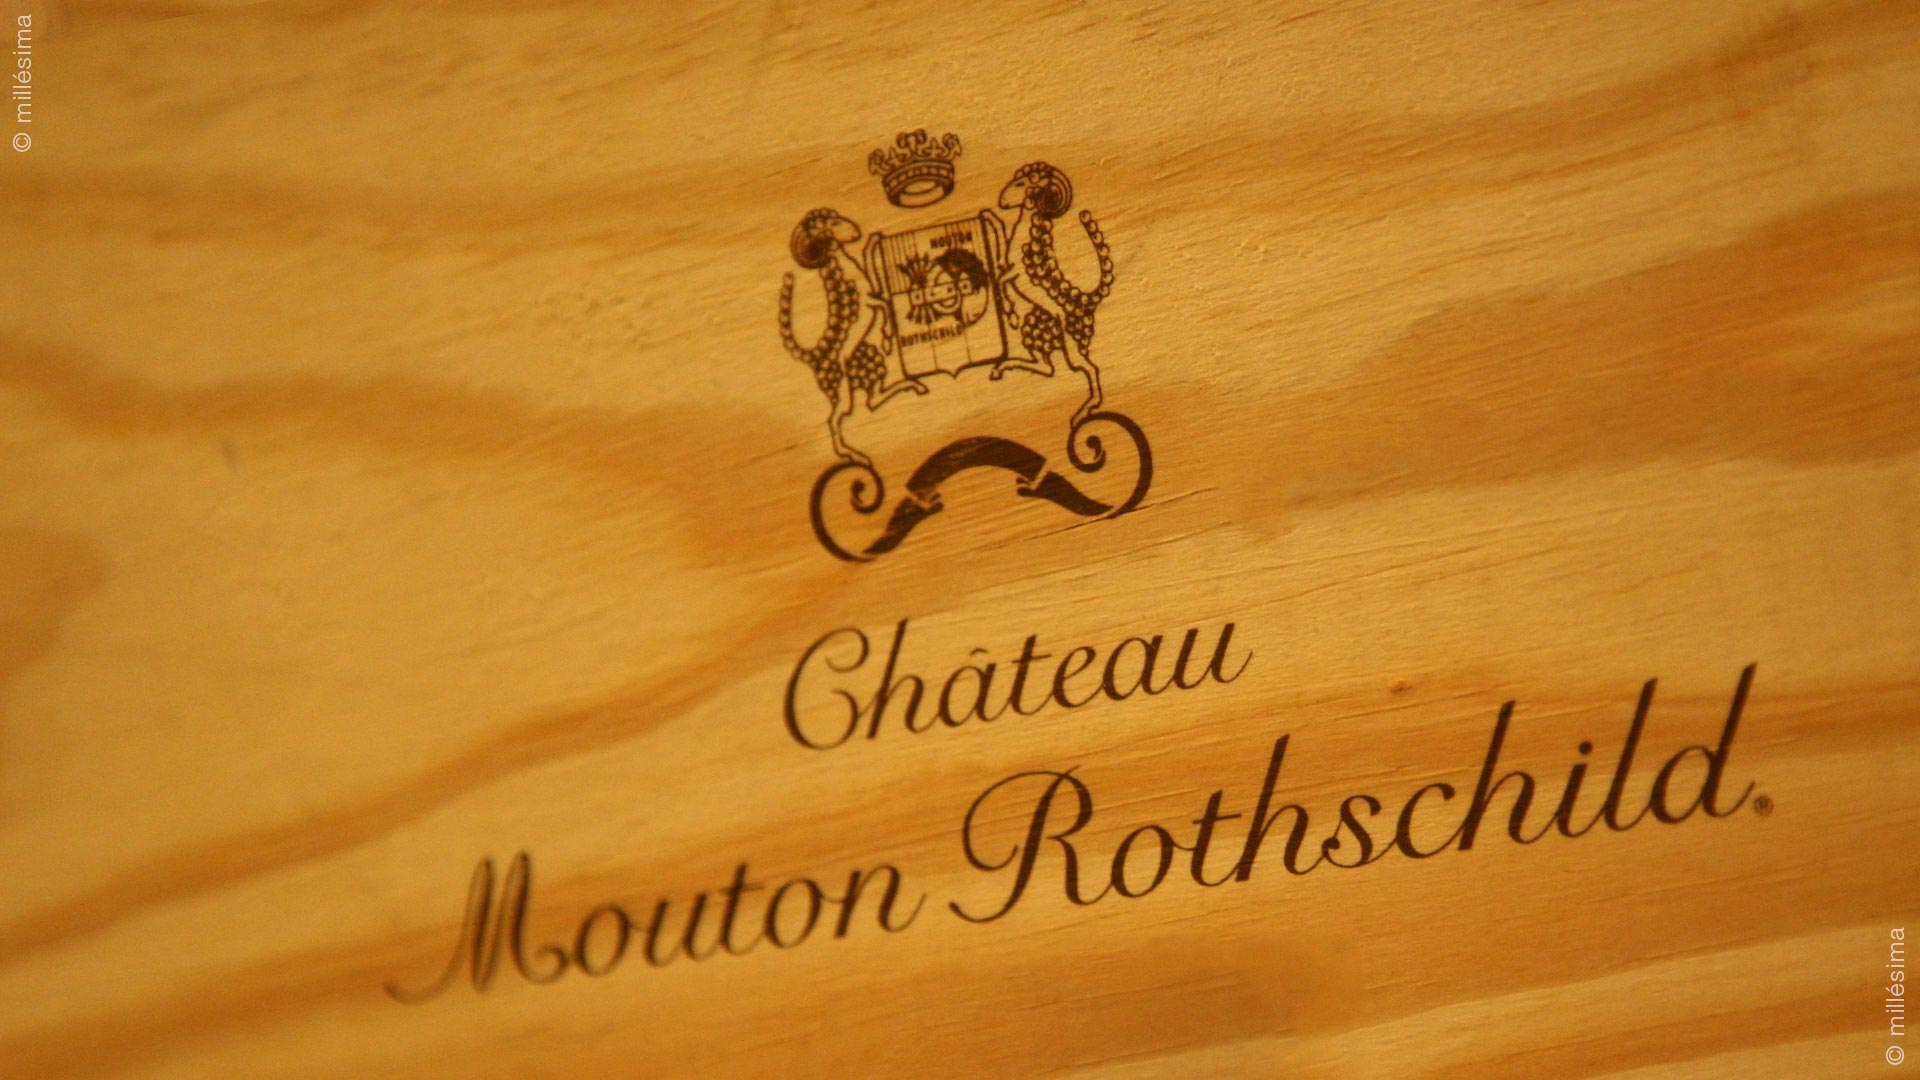 Chateau Mouton Rothschild 2014 - 0